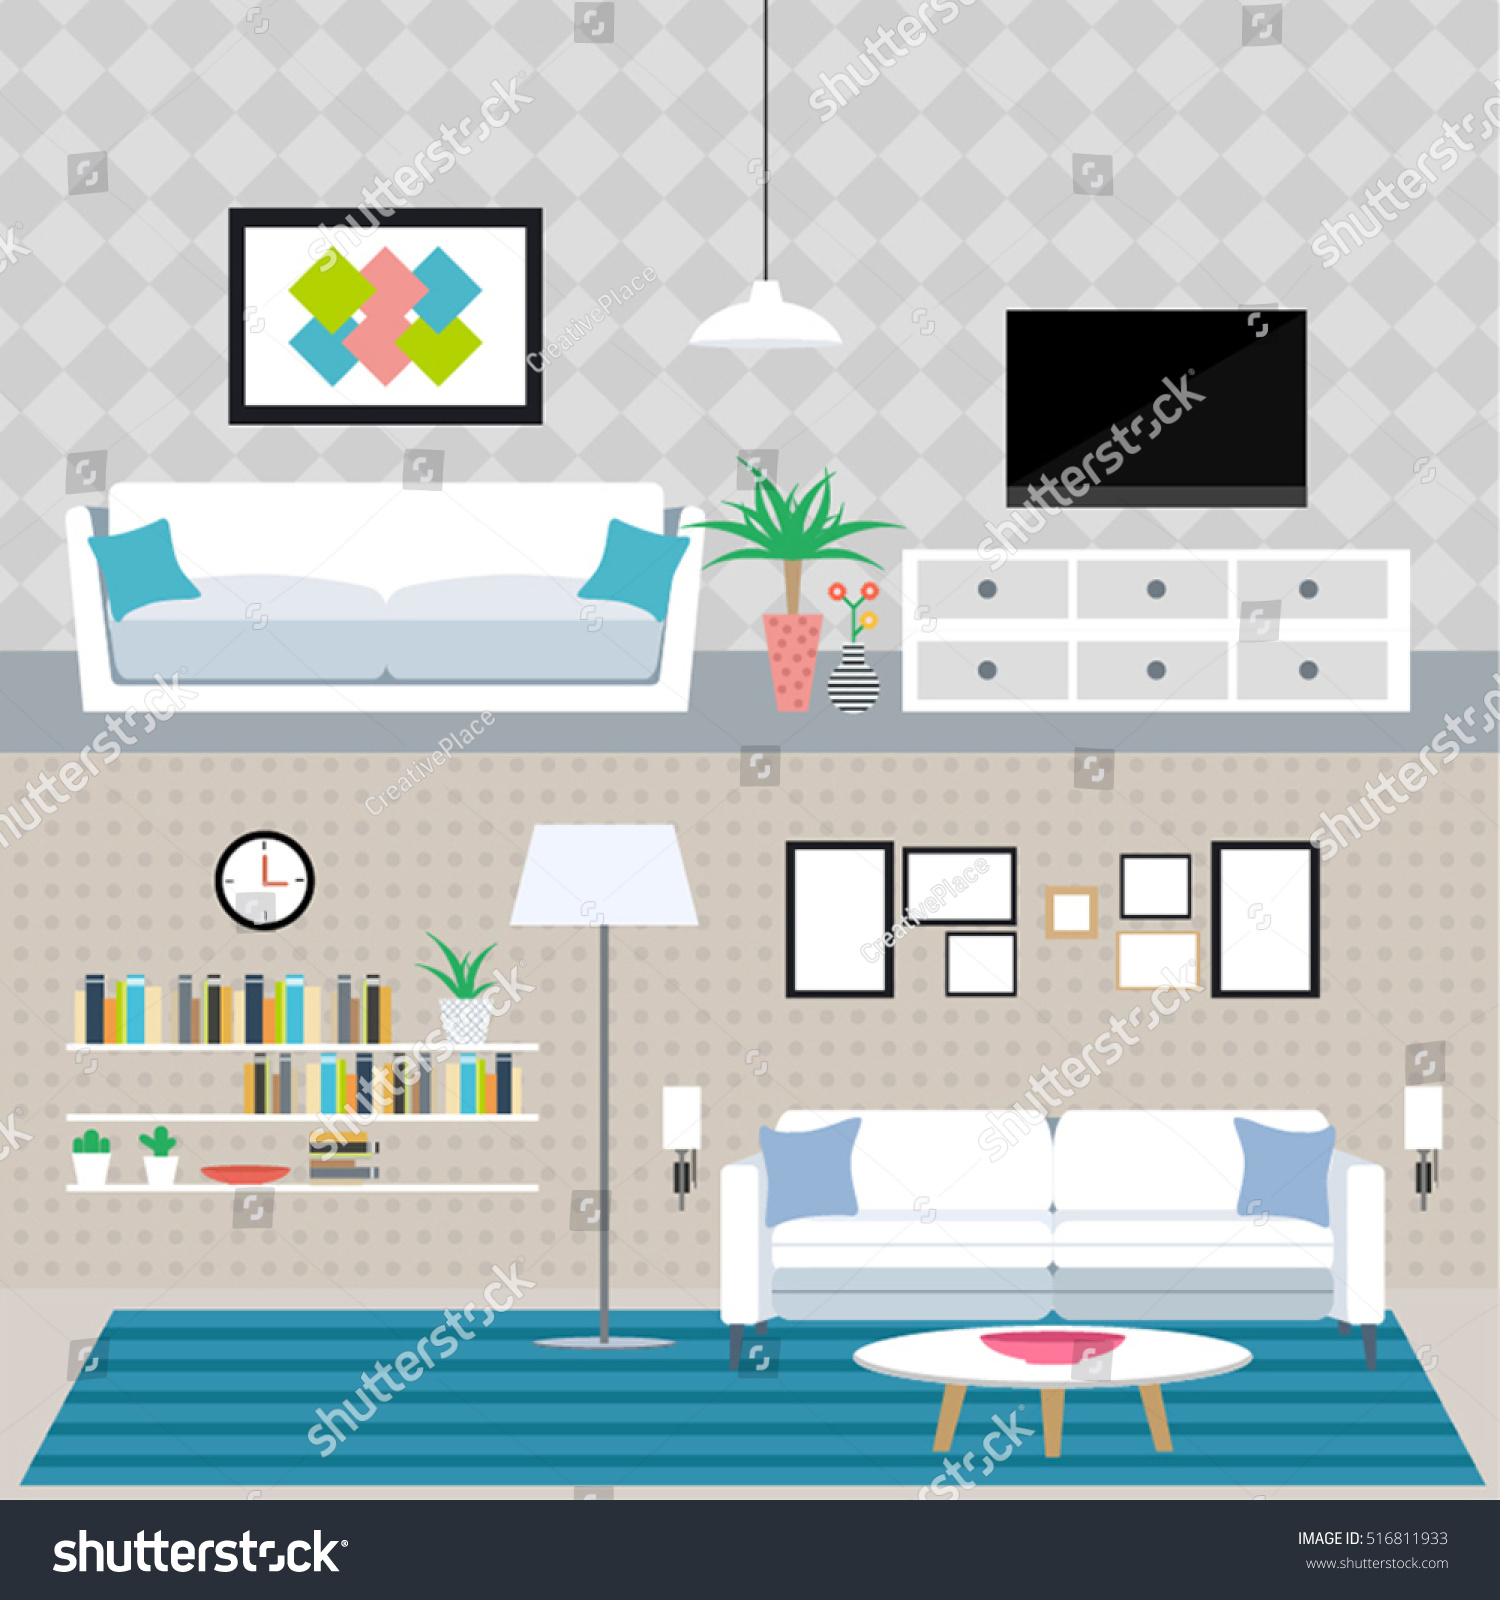 Set Flat Elements Interior Design Concept Stock Vector (Royalty Free ...